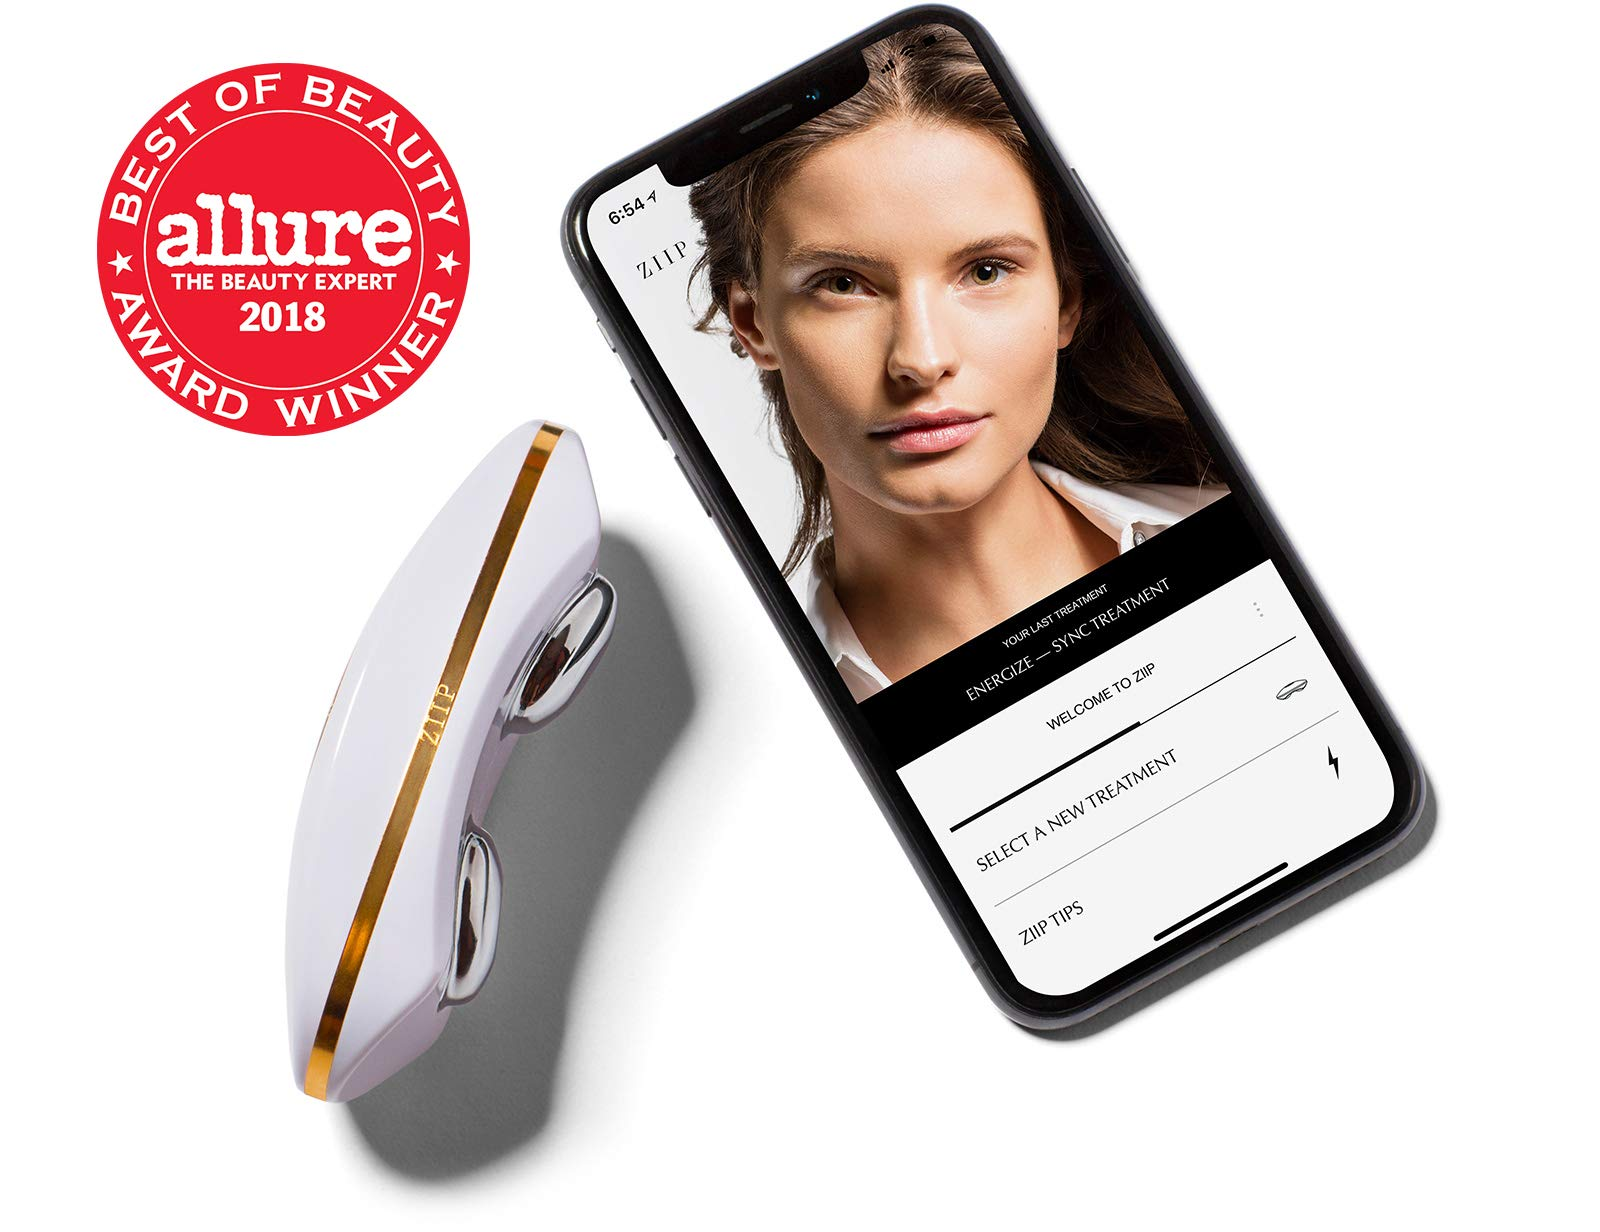 ZIIP Beauty Microcurrent Facial Device - Microcurrent Face Lift Machine For Lifting, Sculpting, and Skin Tightening, Wrinkles, Pigment, and Acne - An Alternative To A Microdermabrasion Machine